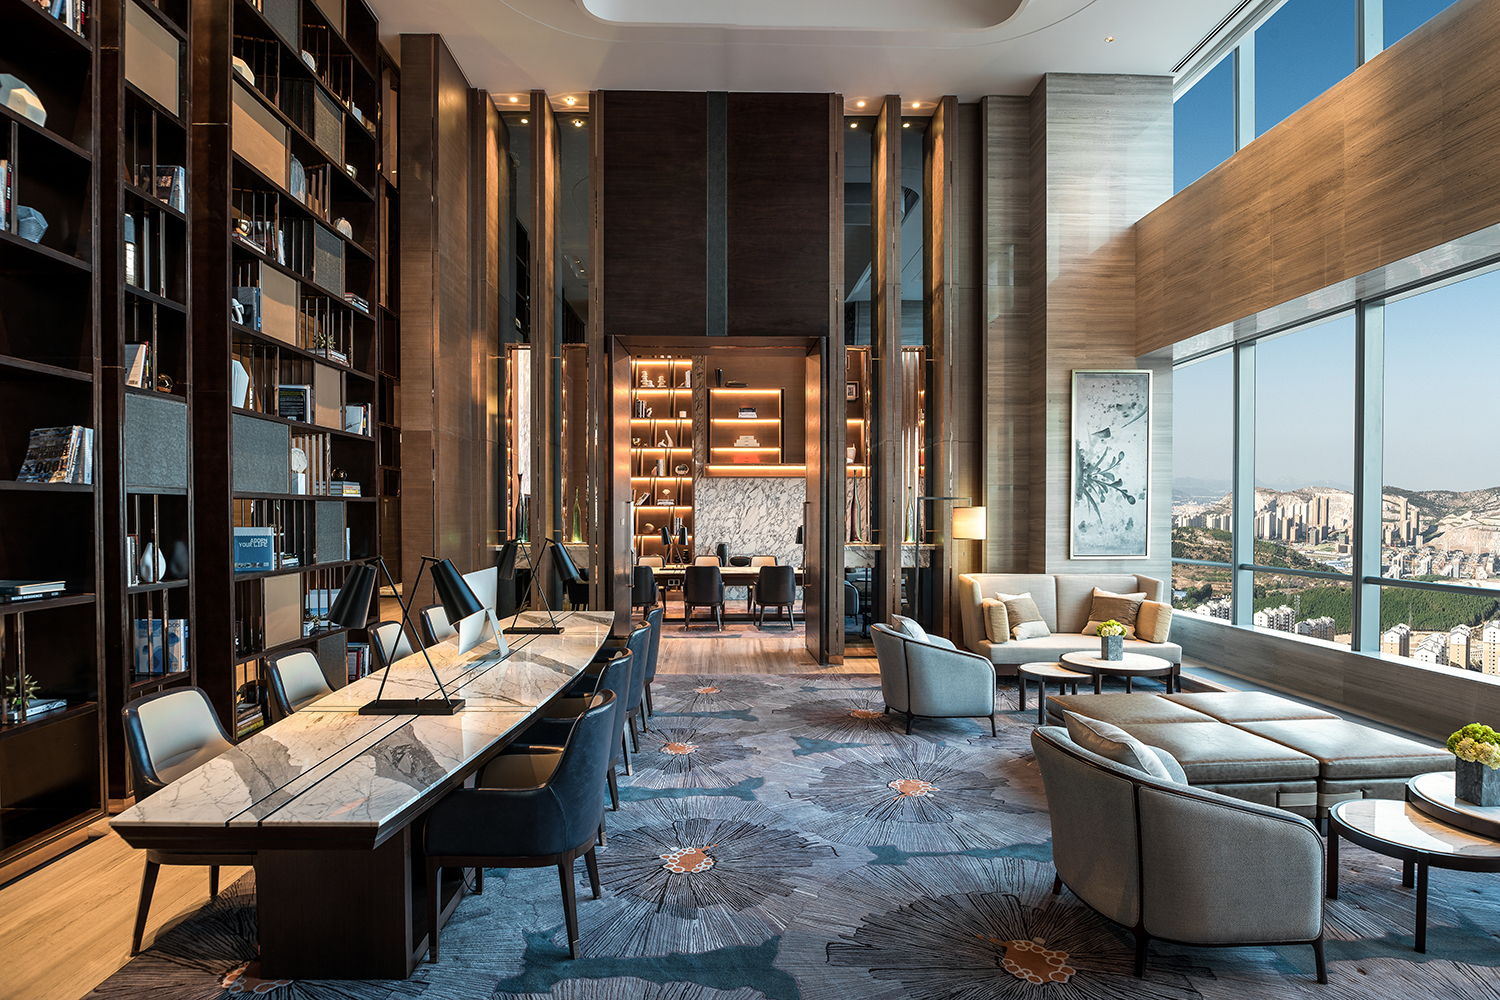 Various seating arrangements placed throughout the open lobbies are tastefully selected and configured to provide much-needed pockets of residential sanctuary to visitors.